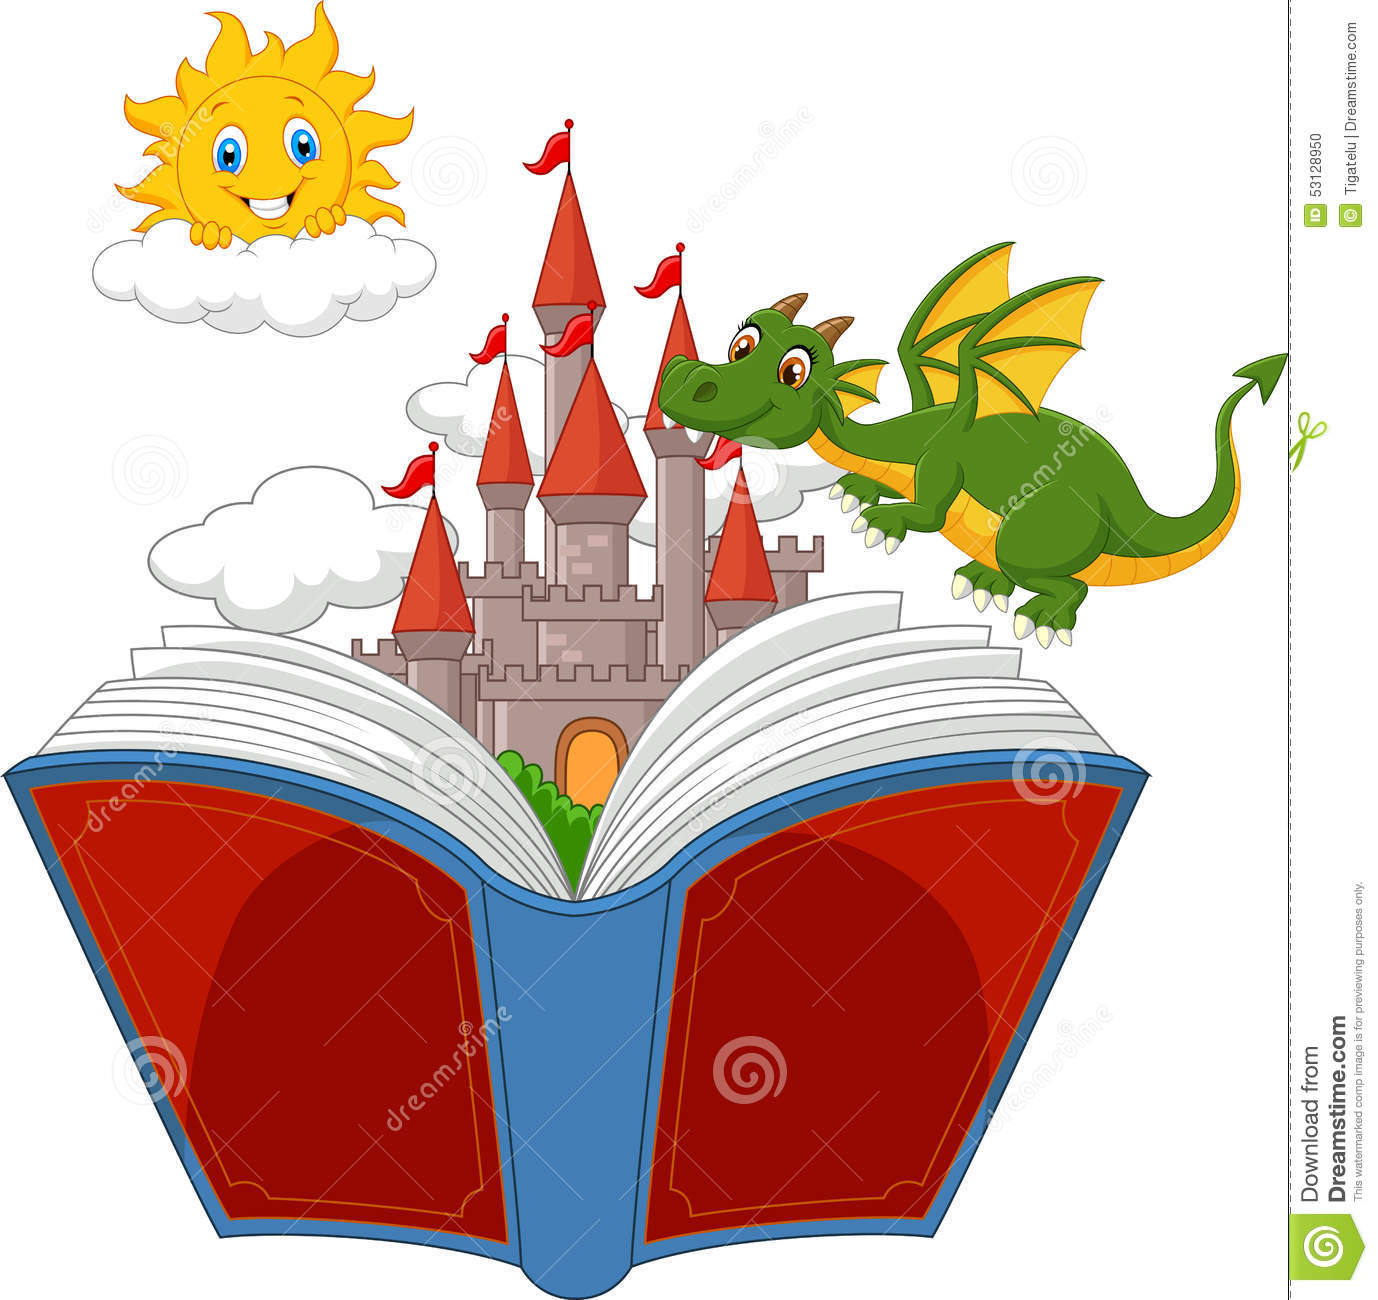 Storybook character clipart vector freeuse Storybook Stock Illustrations – 1,317 Storybook Stock ... vector freeuse